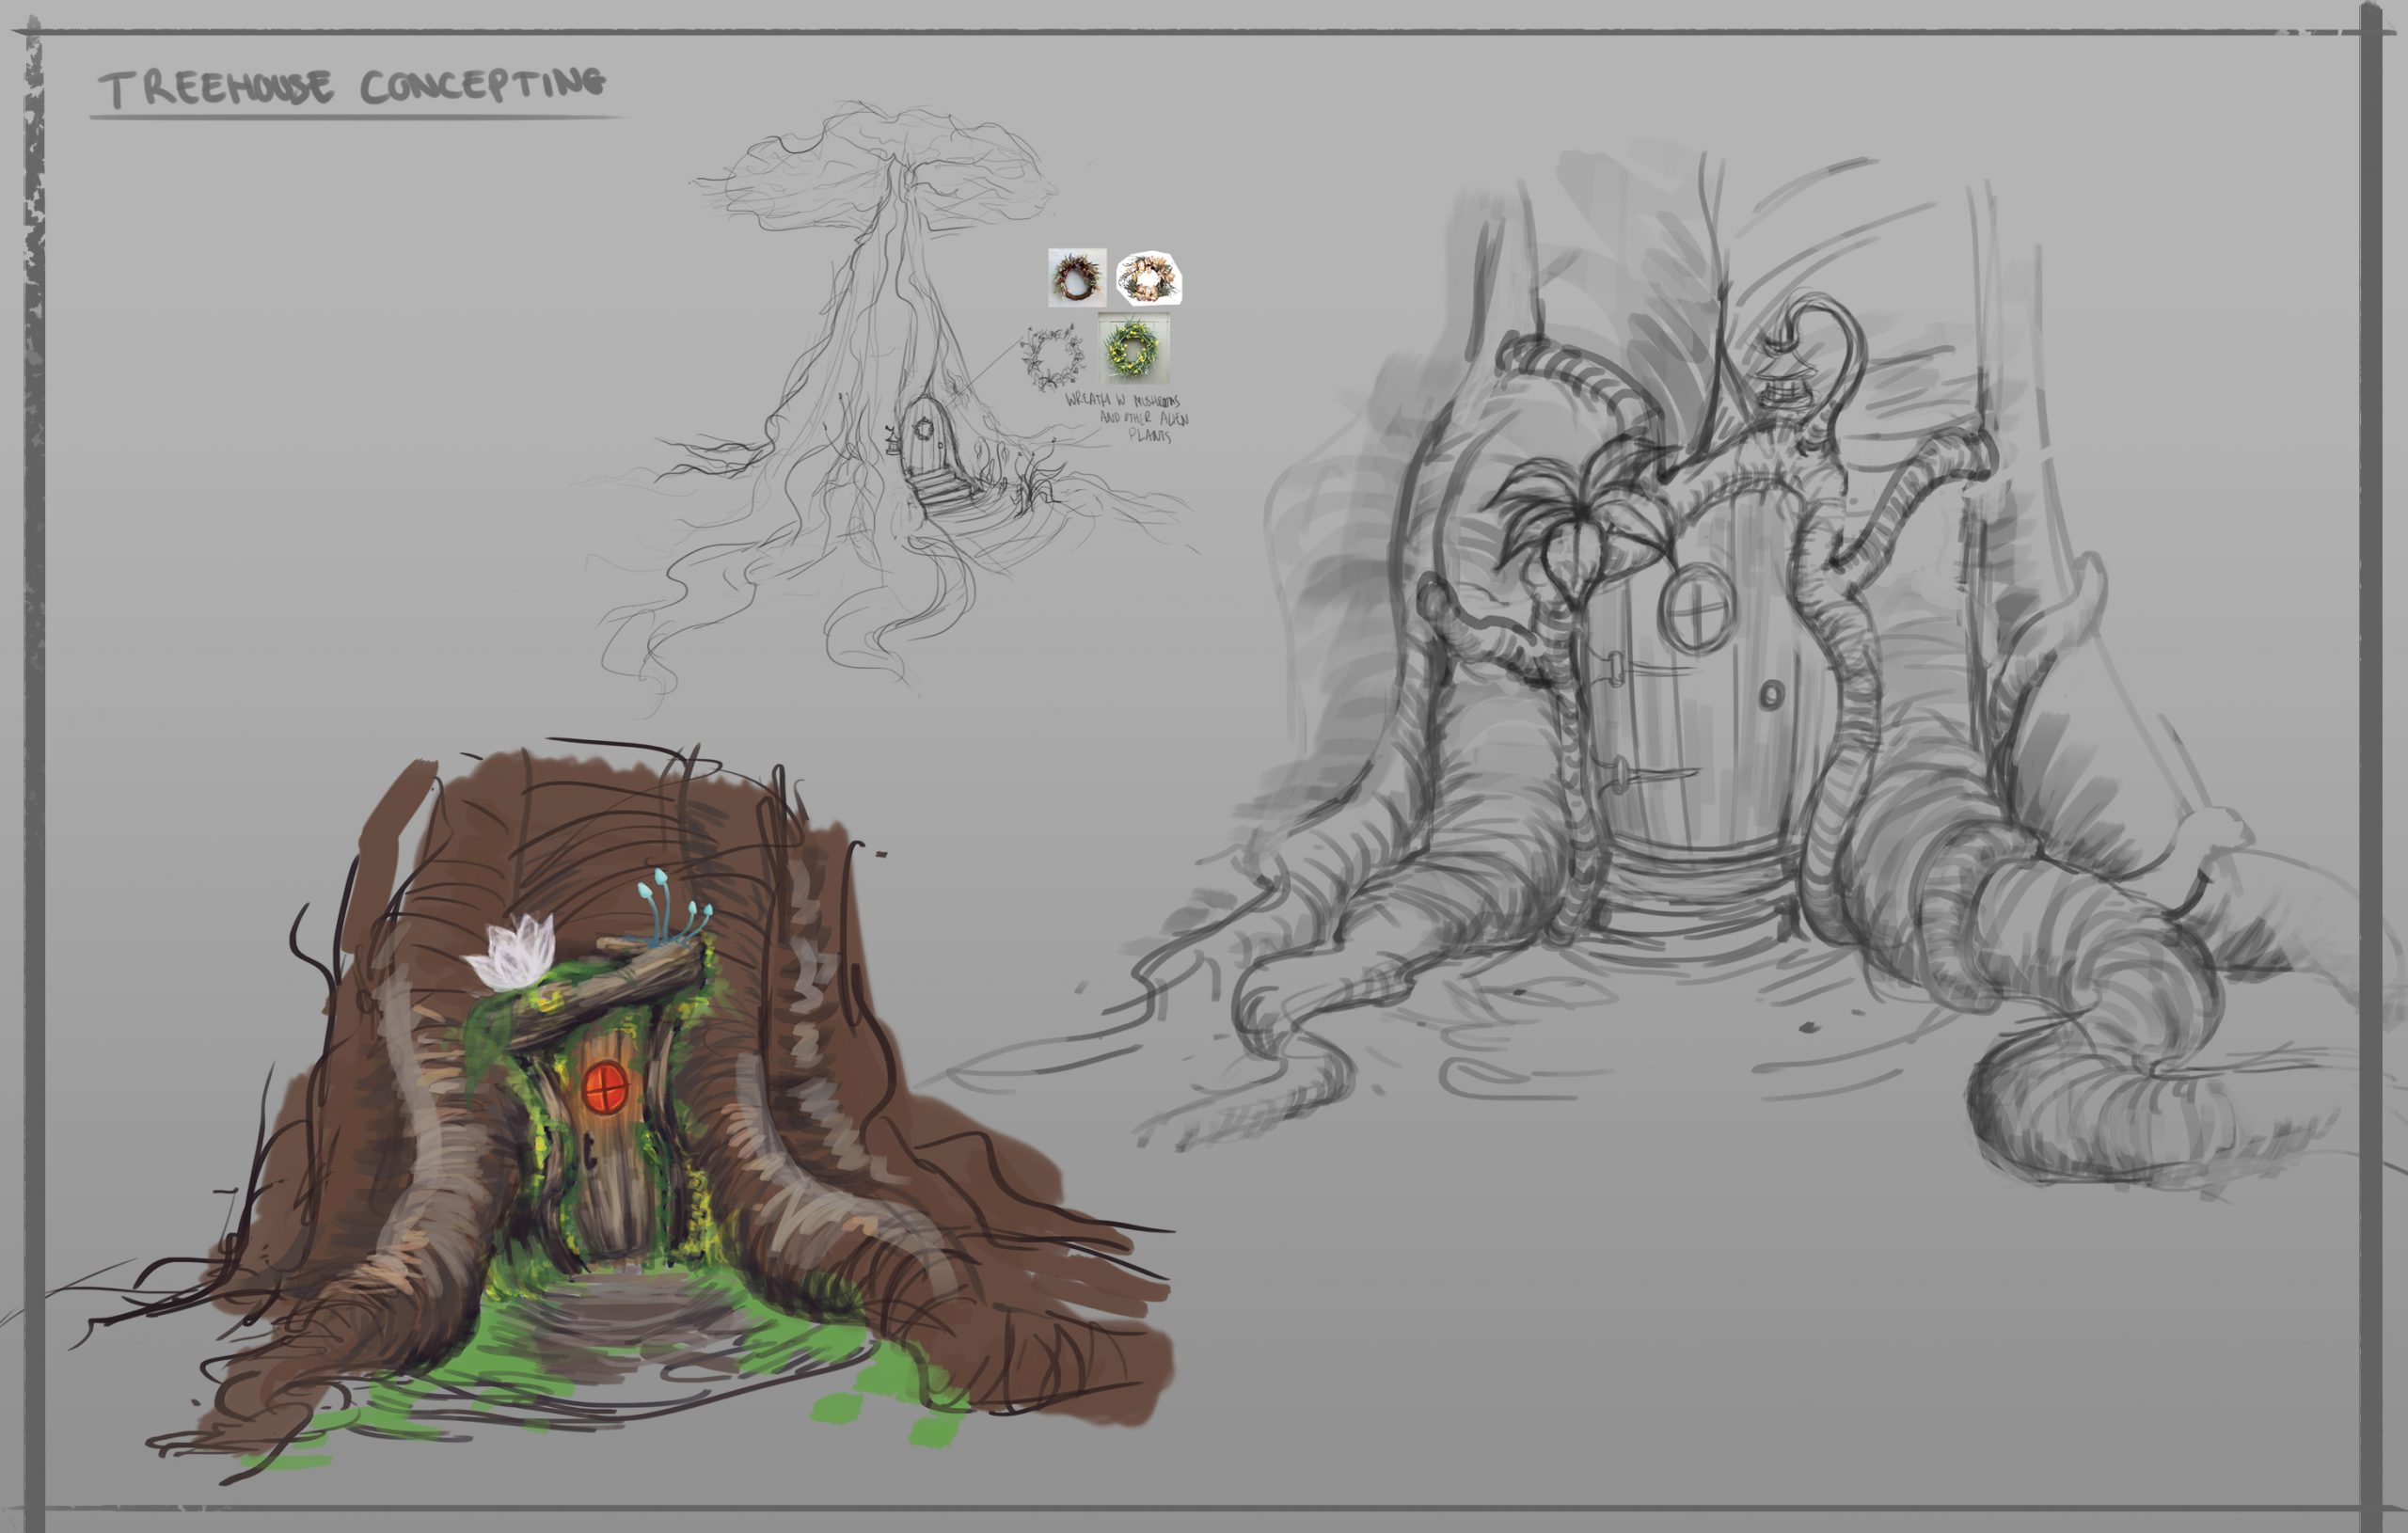 Alien Jungle Project - Concepting Image